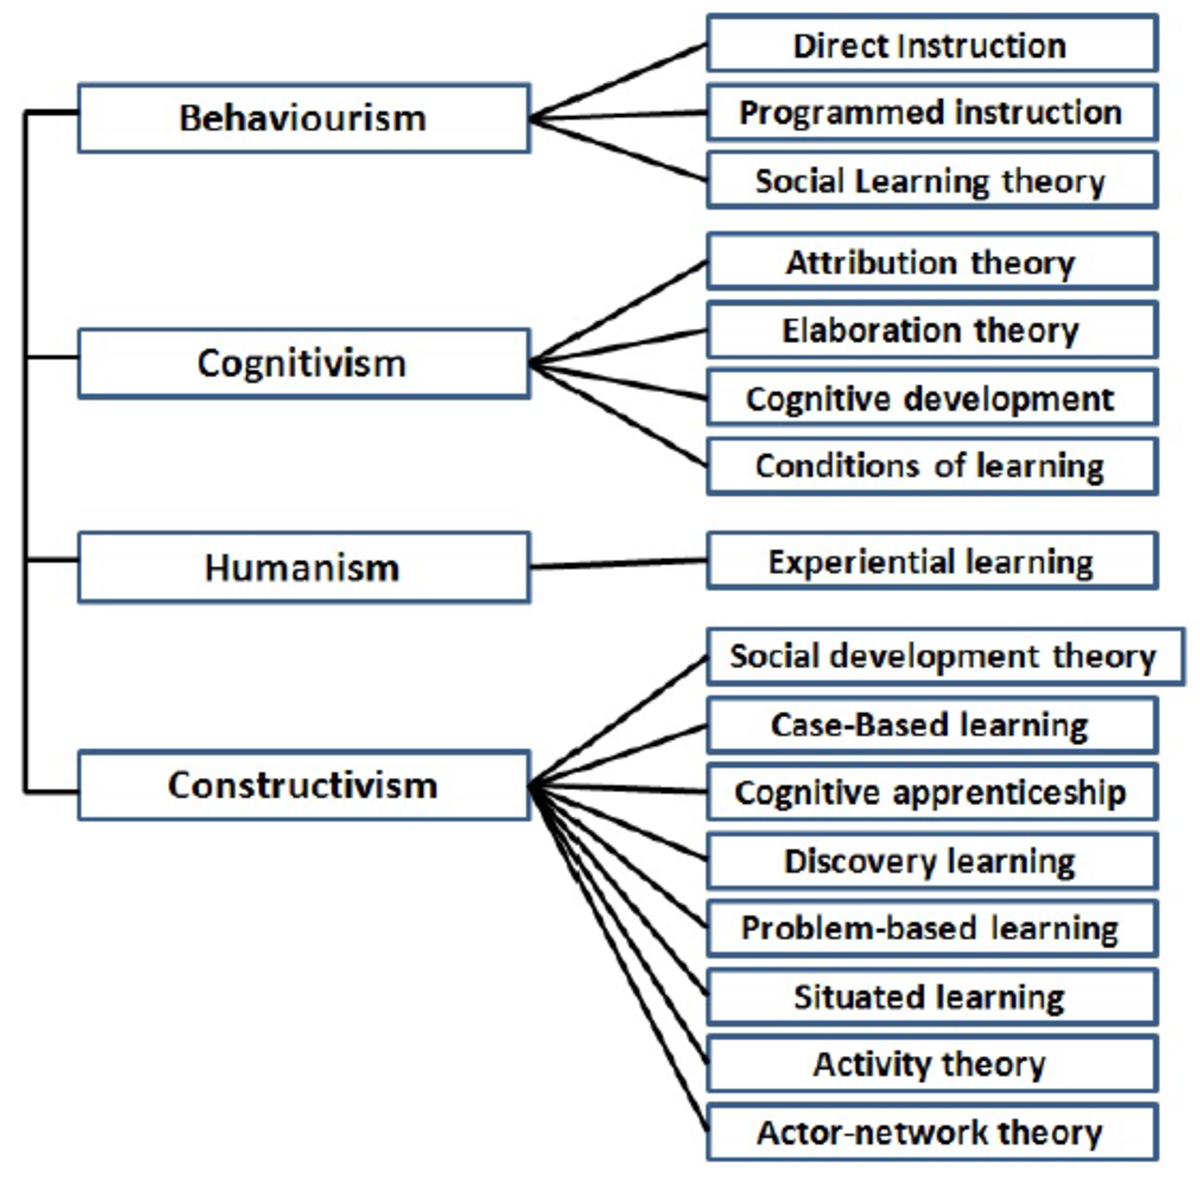 Figure 1: Classification of learning theories.